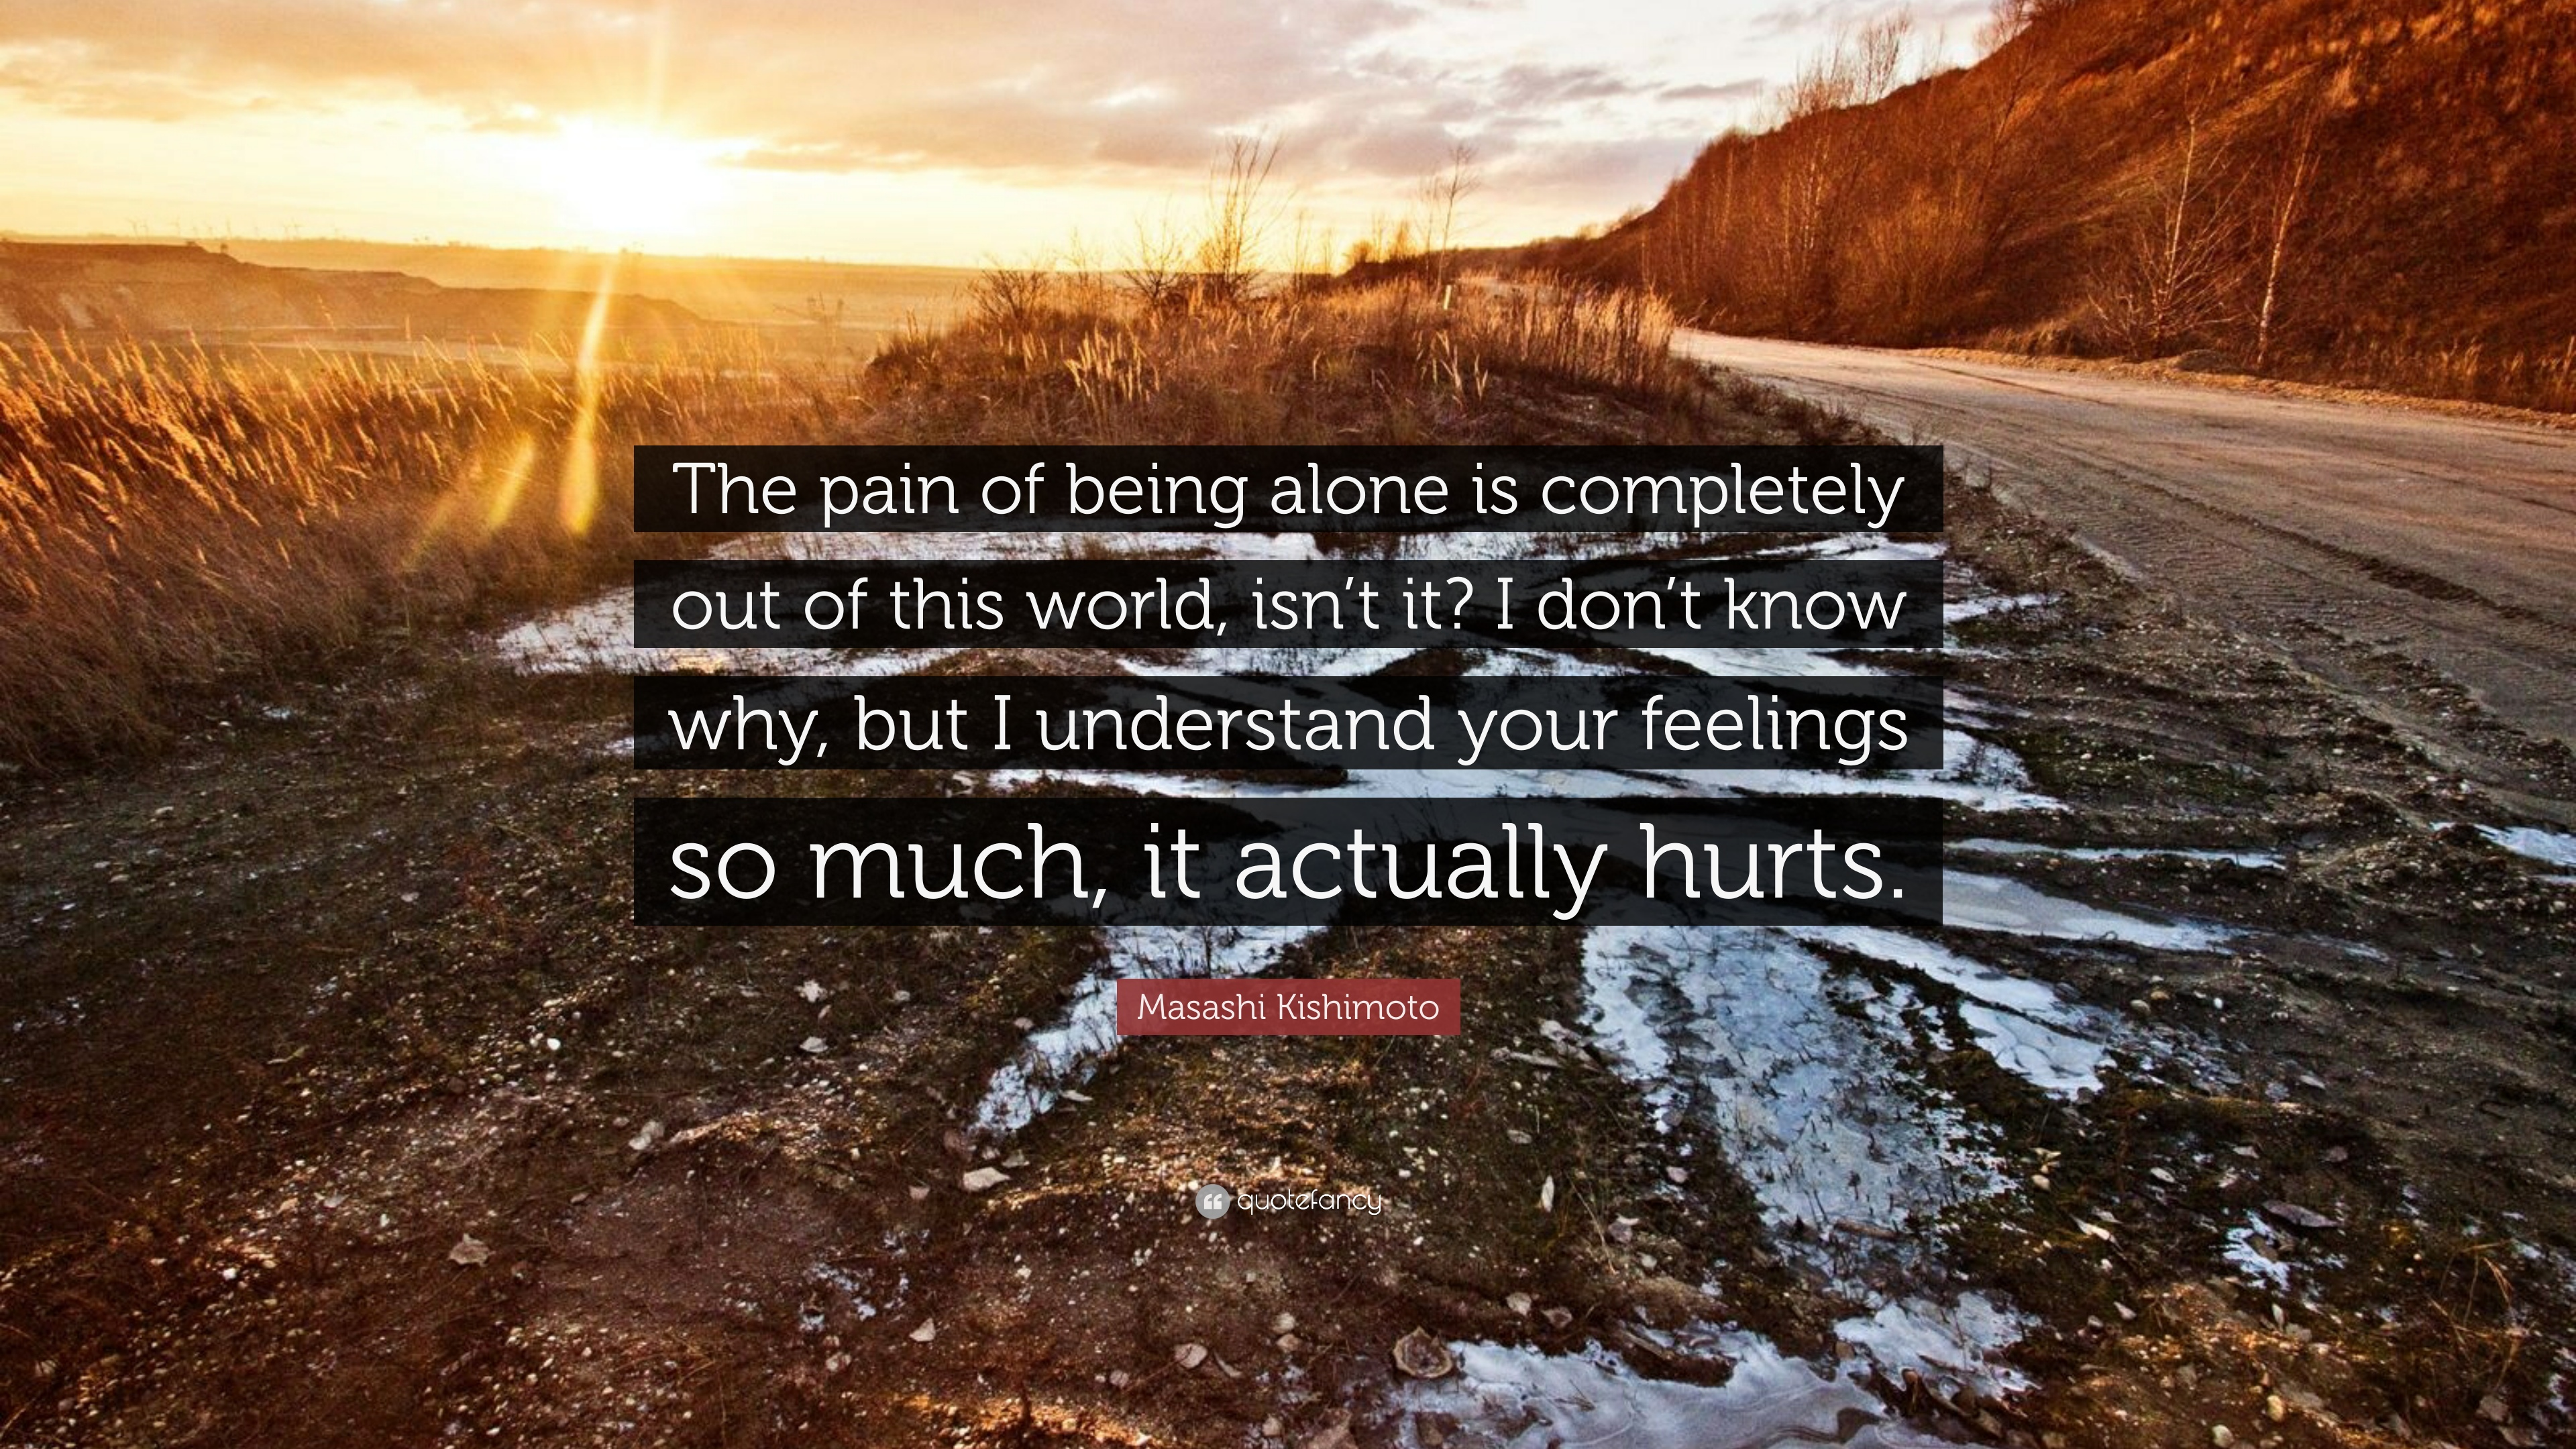 The Pain of Being Alone